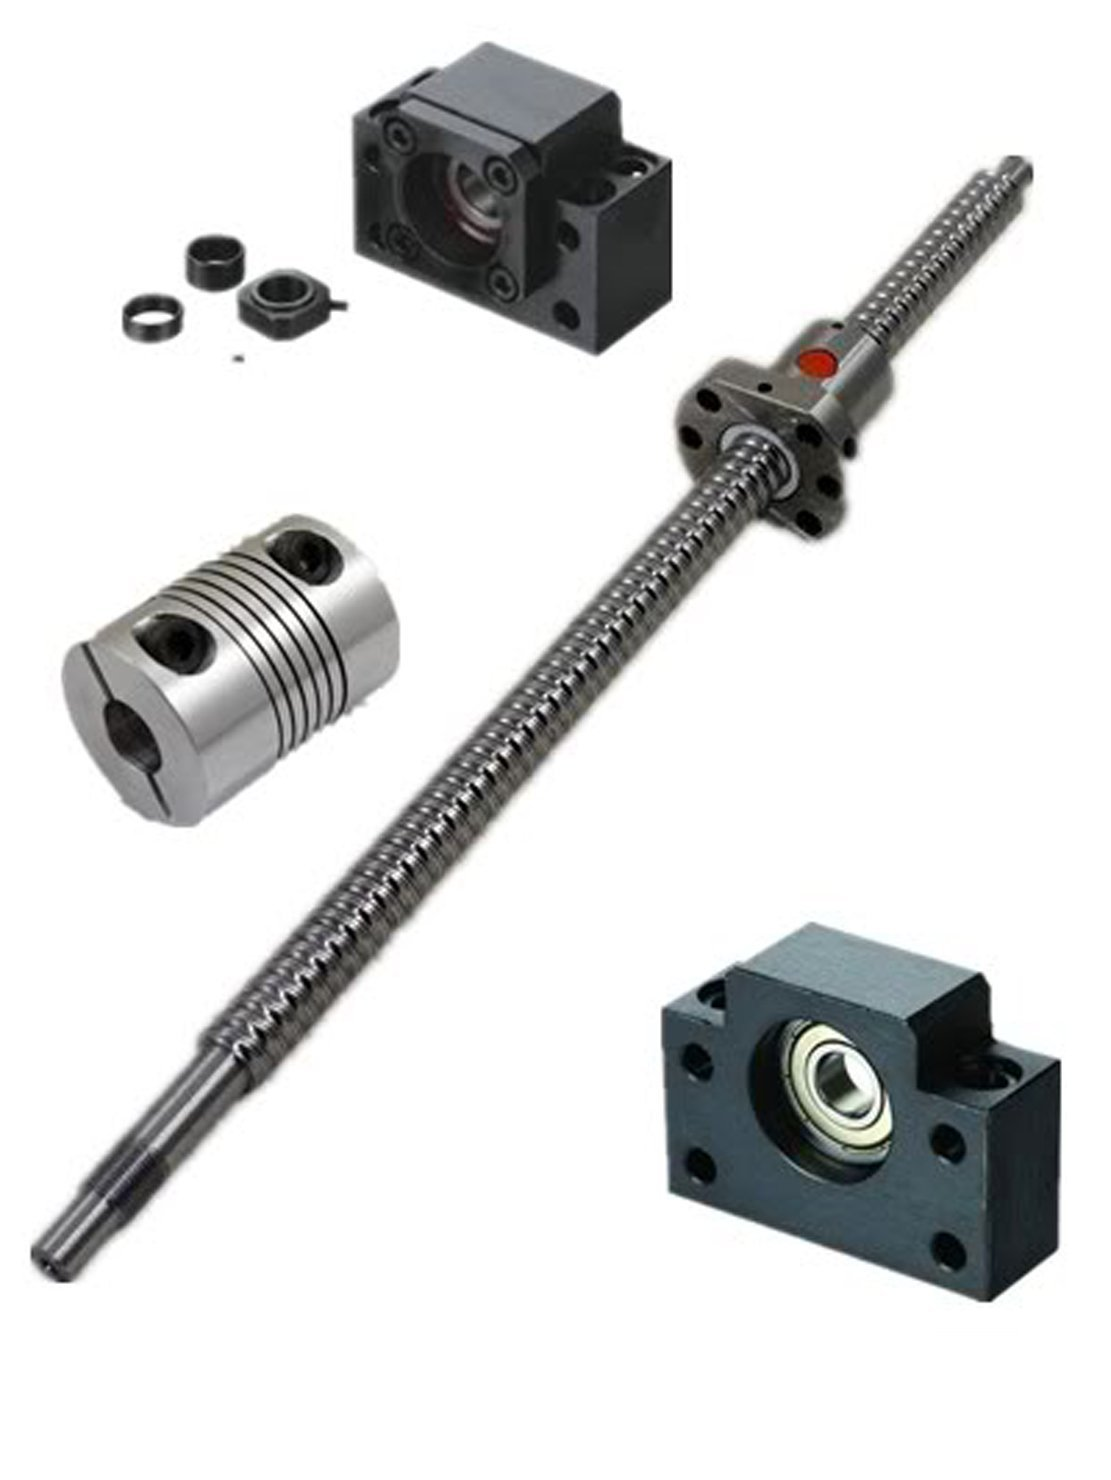 Ten-high Ballscrew RM1605 16mm 675mm/700mm with nut+bk/bf12 End Supports+1pcs 6.35*10mm Coupler (700mm long)